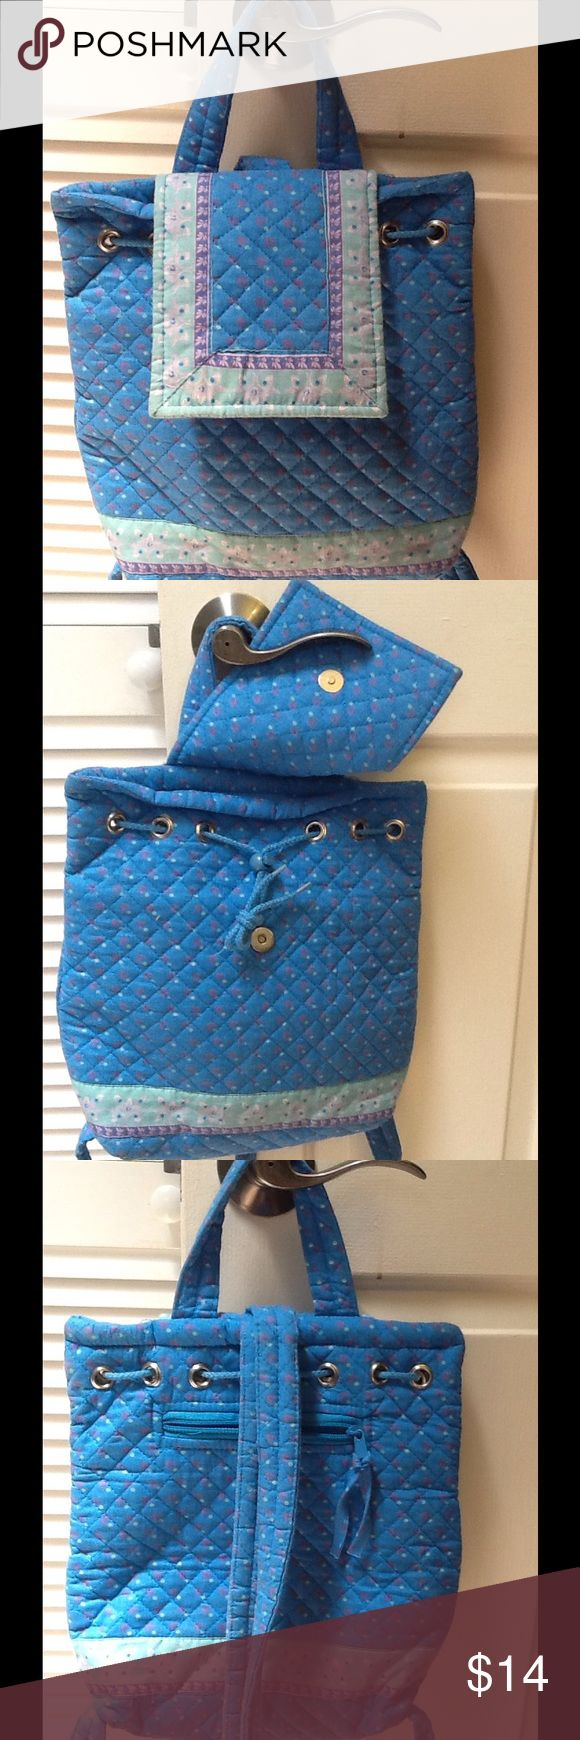 Blue quilted backpack. Blue backpack with drawstring. Vera Bradley copy cat. Has cushion divider and pockets inside. Gently used. Can be thrown in washing machine. Bags Backpacks